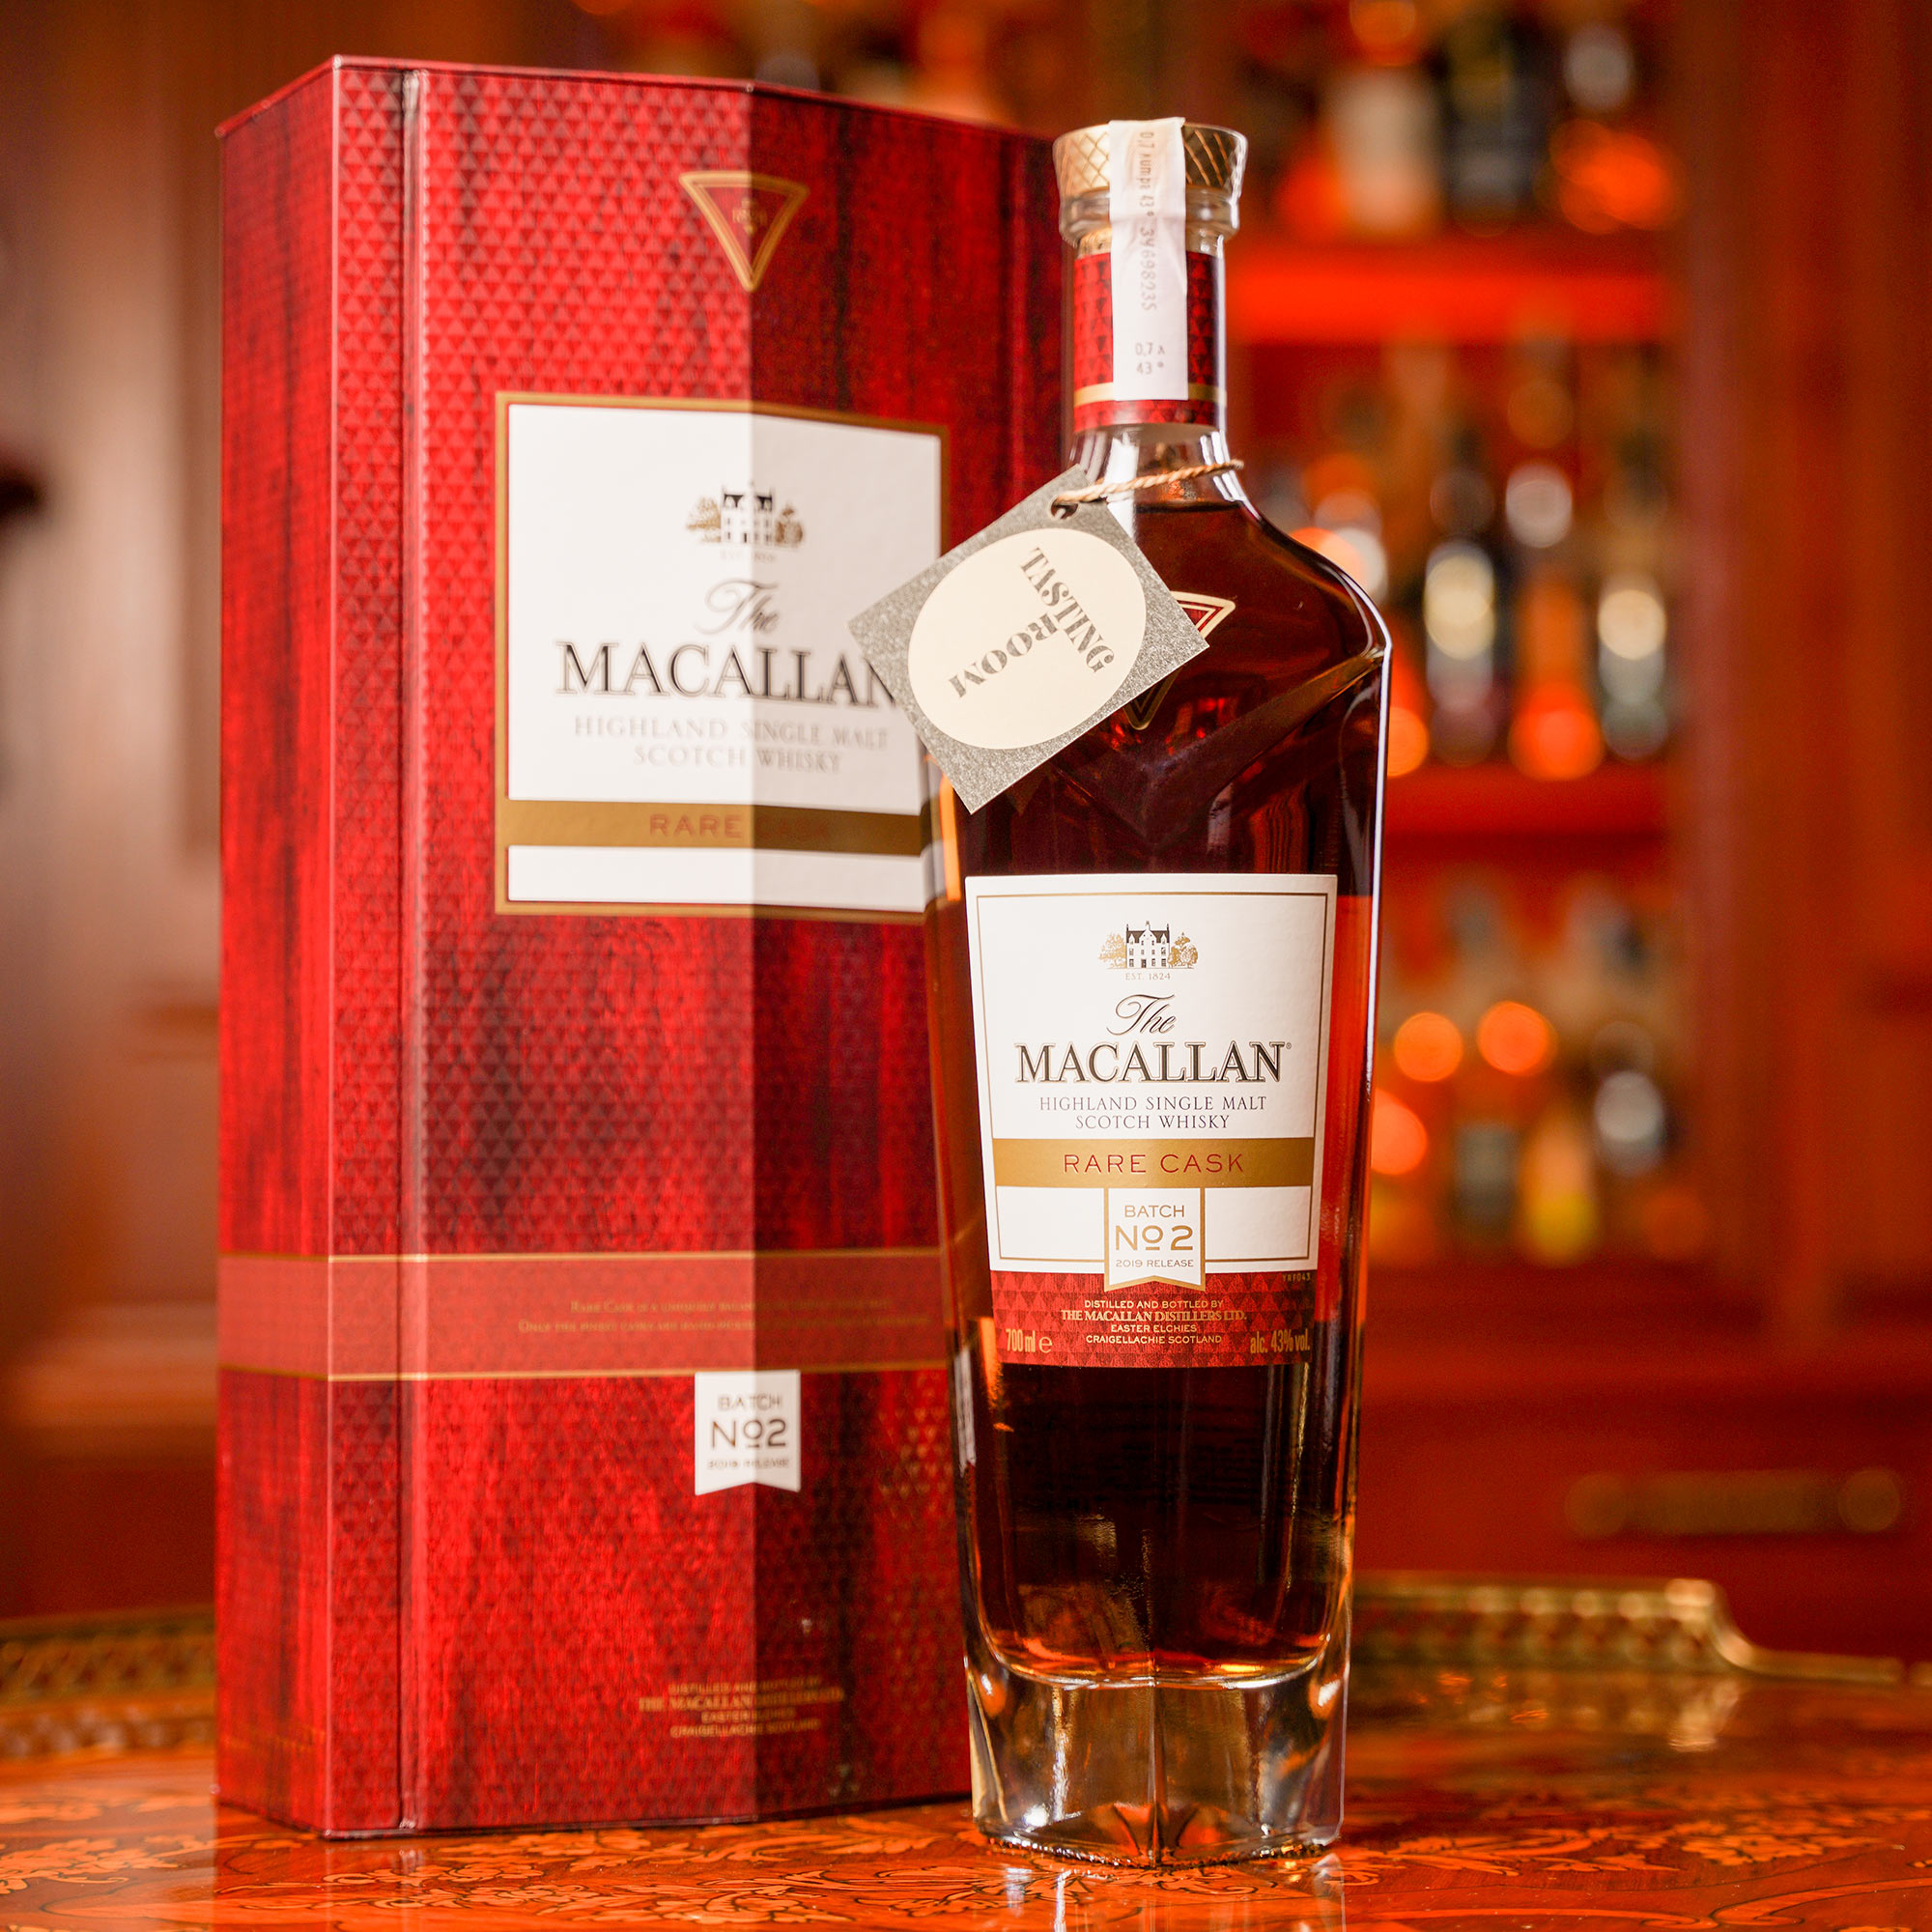 The Macallan Rare Cask Batch No 2 / Макалън Реър Каск